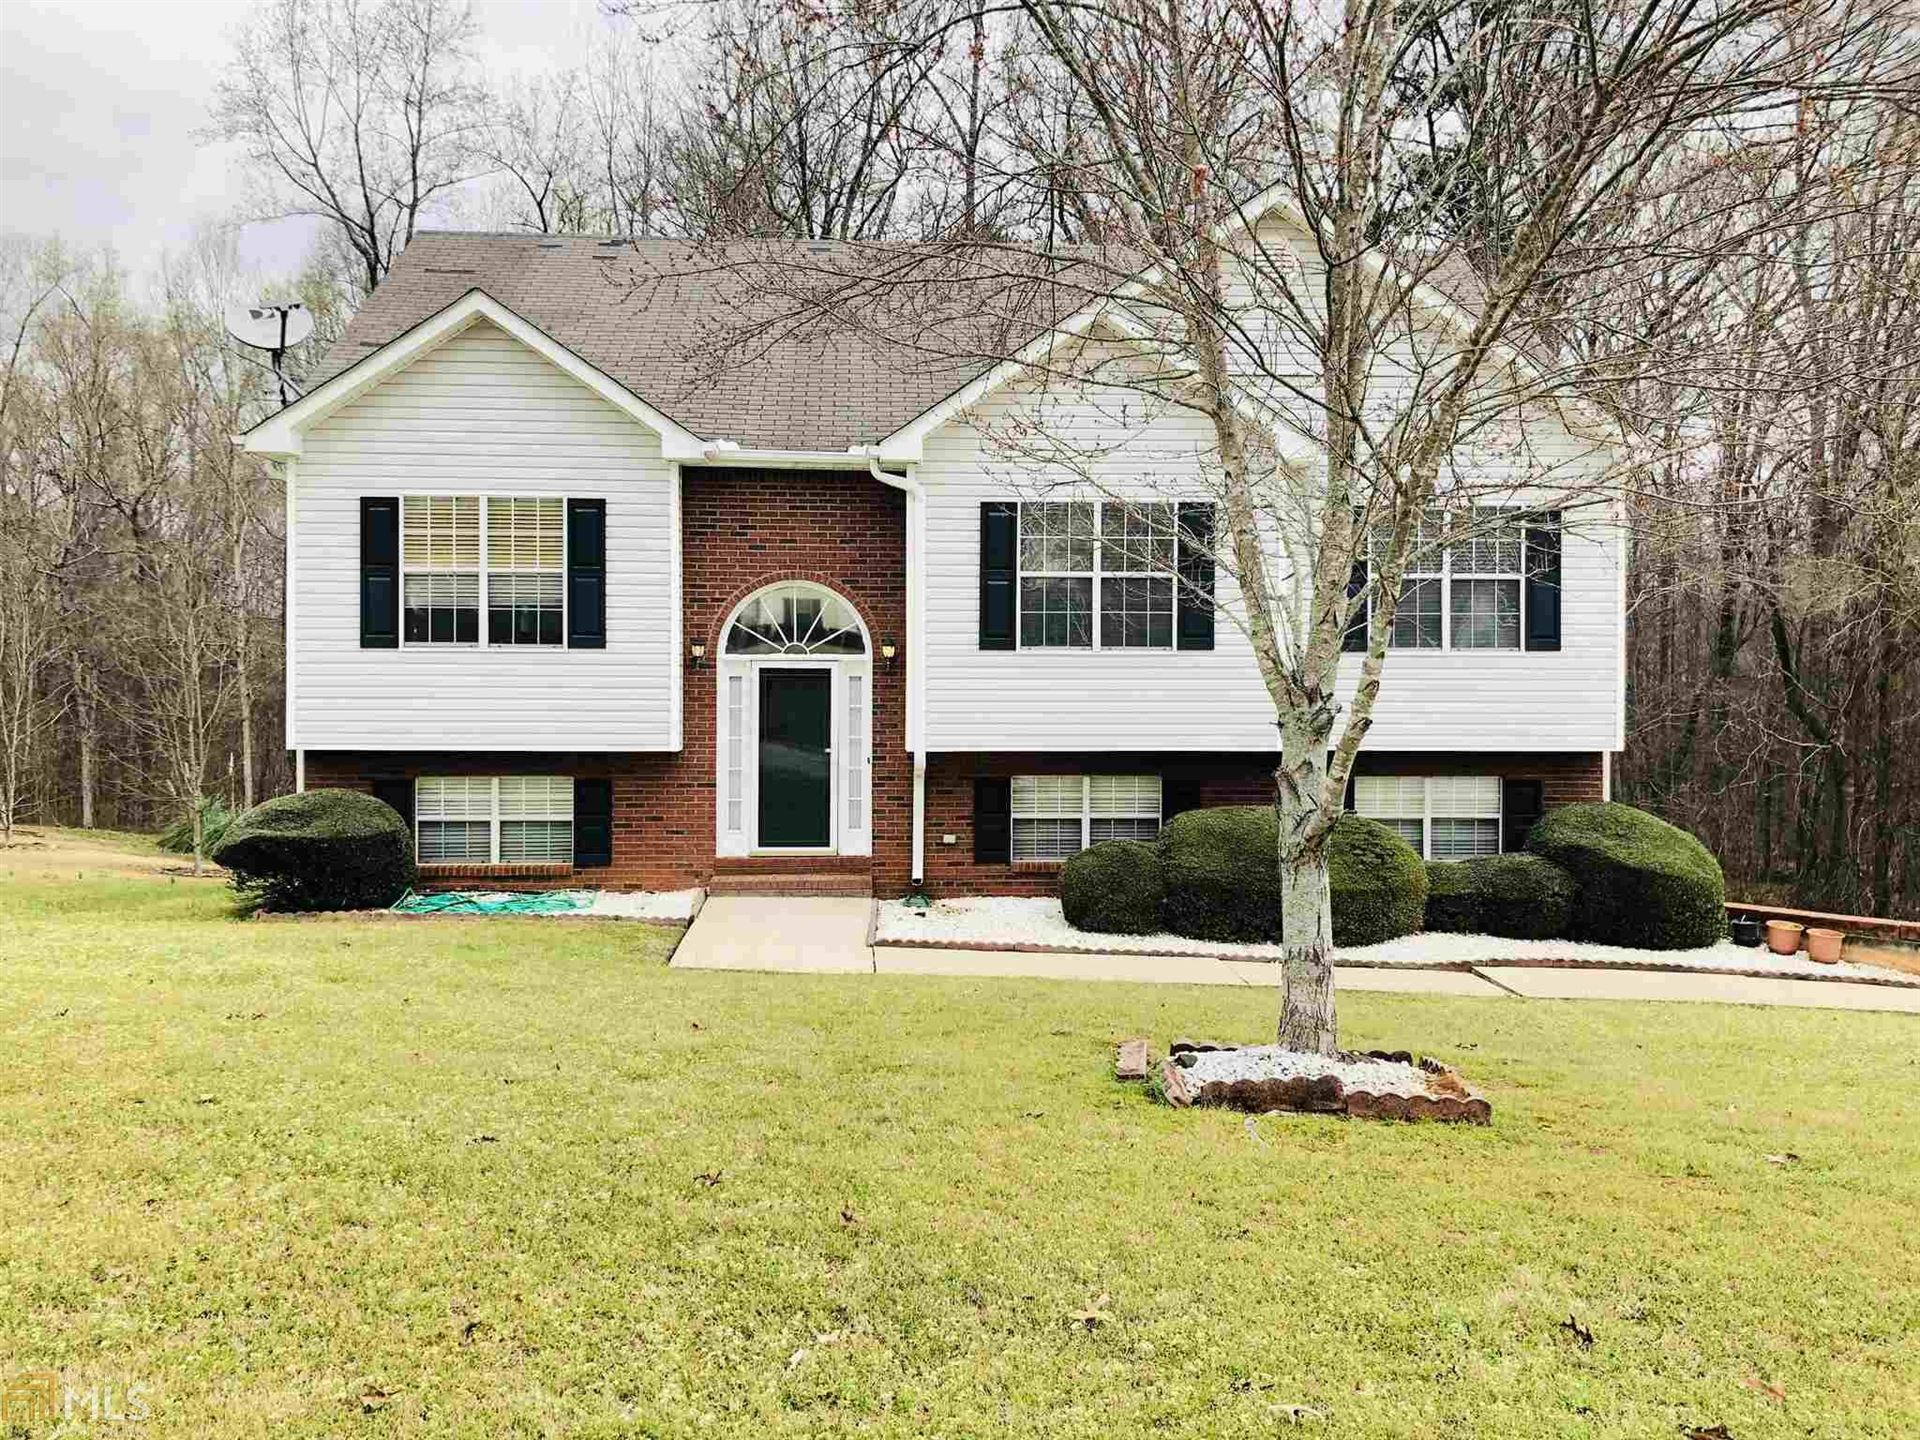 320 Forest Brook Dr, Covington, GA 30016 - #: 8796253